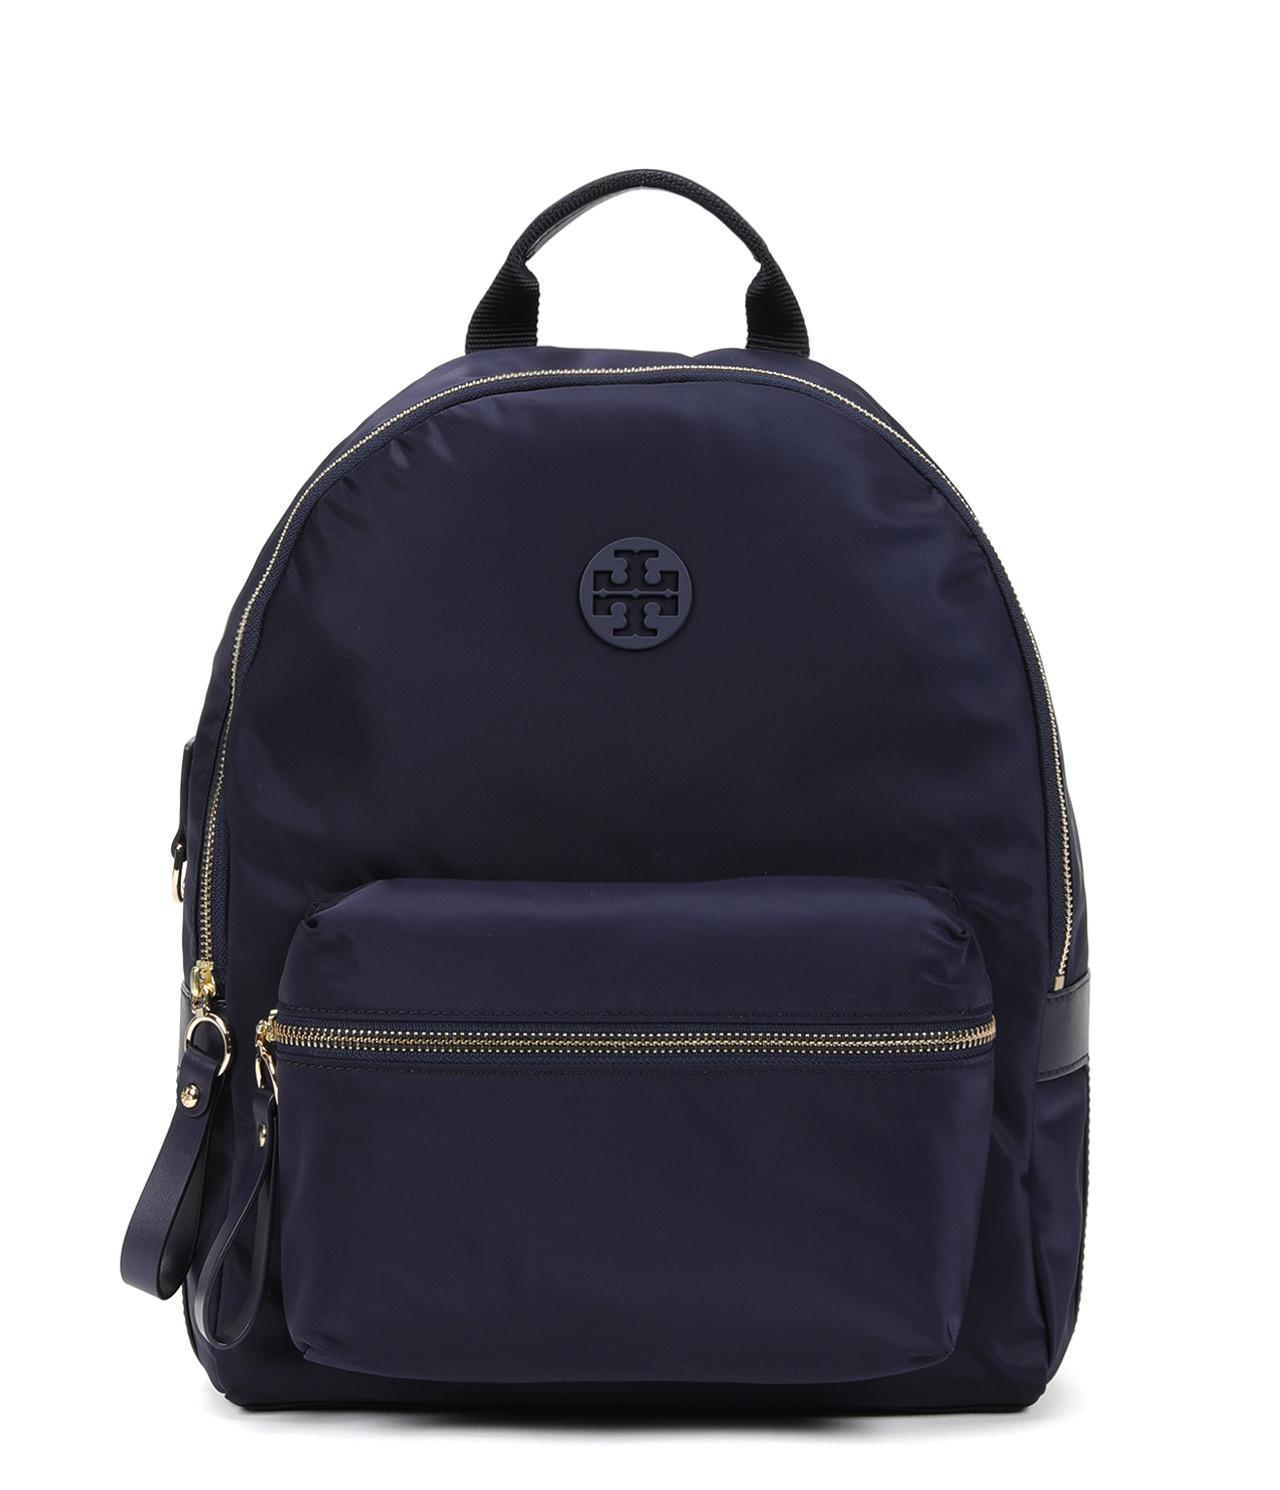 ac2fb57ed3 Tory Burch Backpack Women in Blue - Save 31.627906976744185% - Lyst